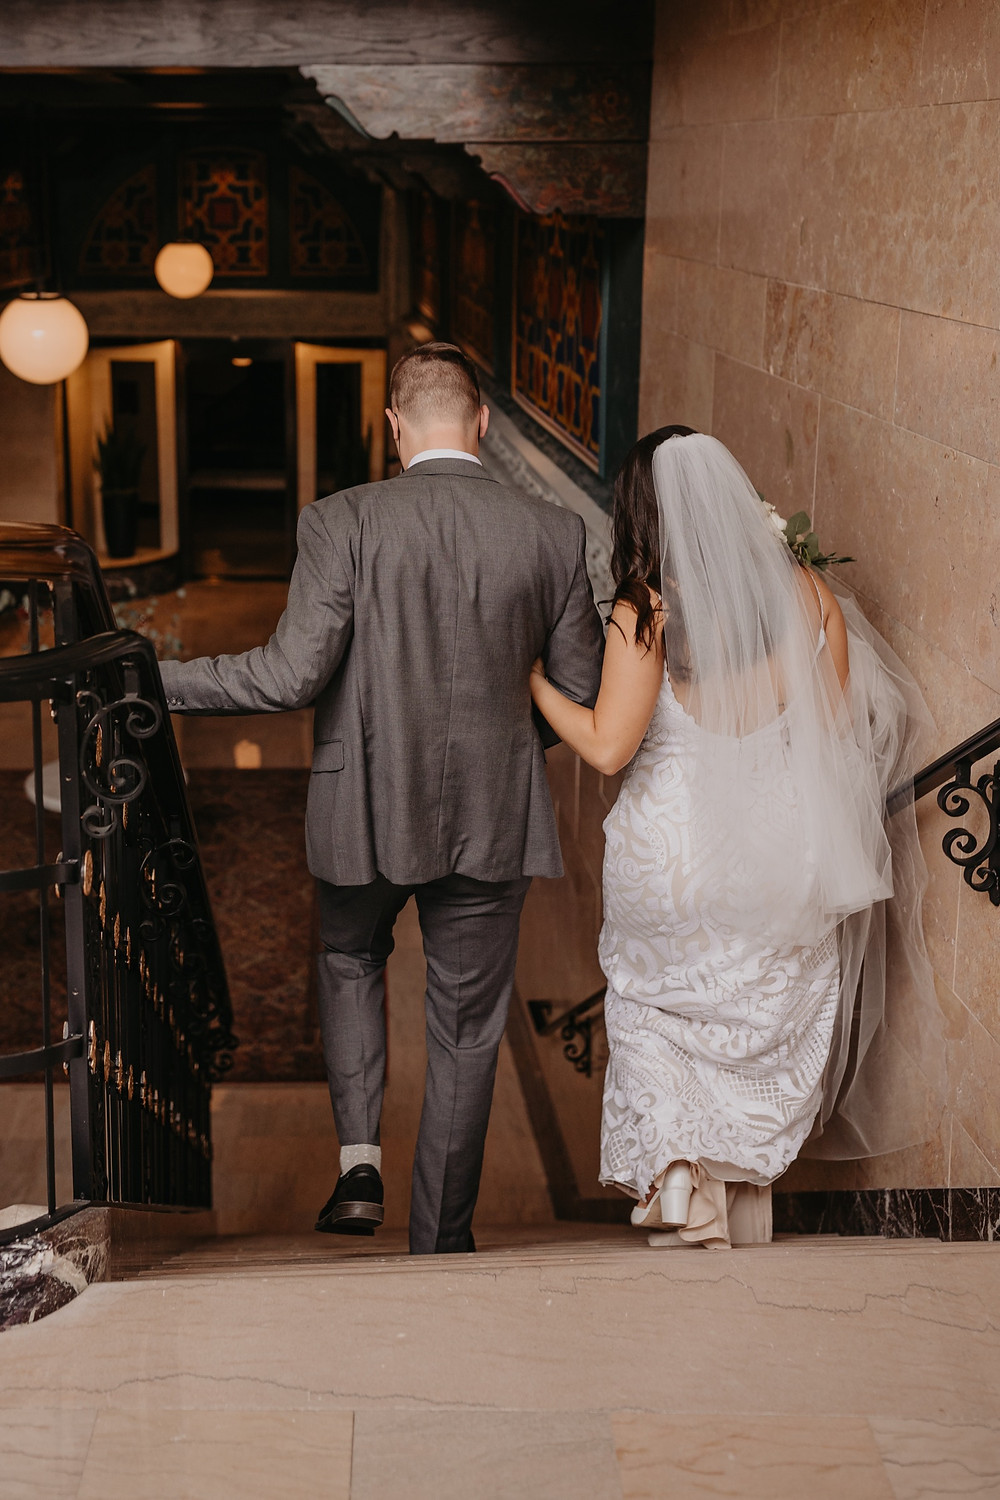 Bride and groom exit wedding ceremony. Photographed by Nicole Leanne Photography.